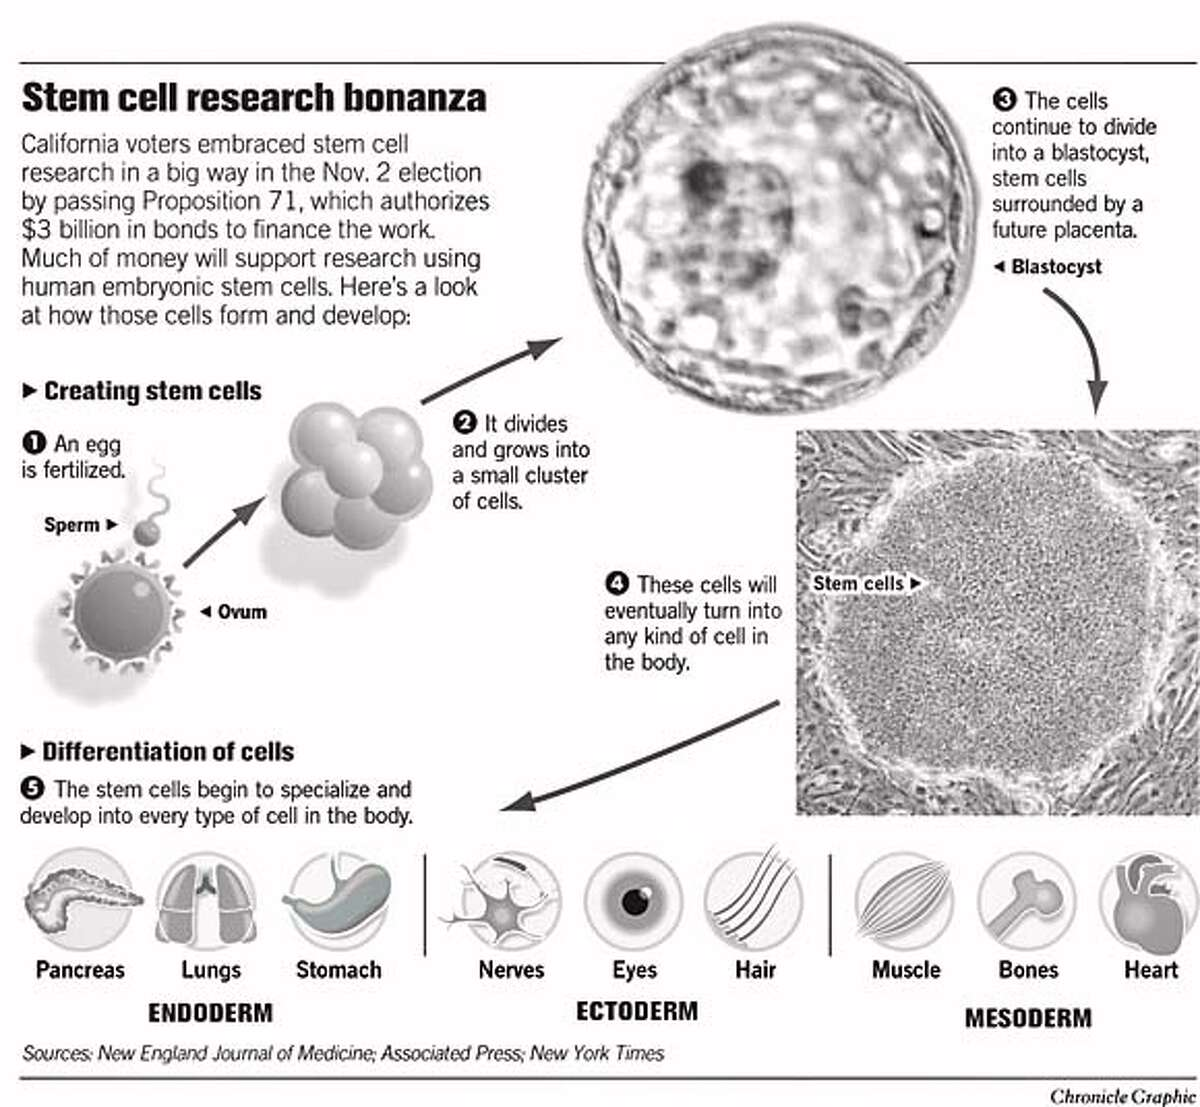 Stem Cell Research Bonanza. Chronicle Graphic